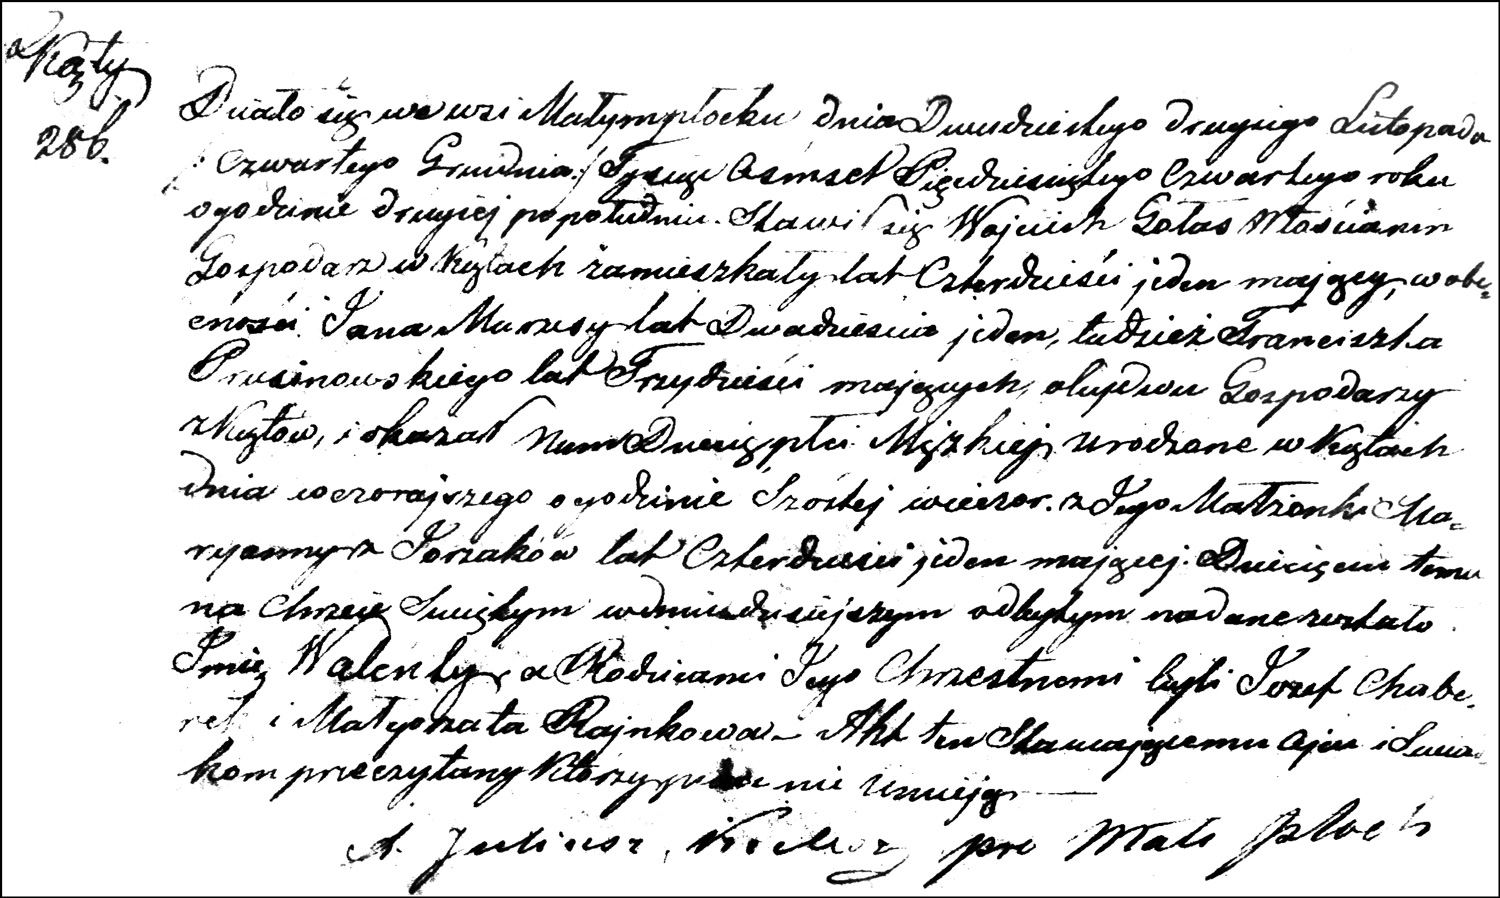 The Birth and Baptismal Record of Walenty Gołaś – 1854